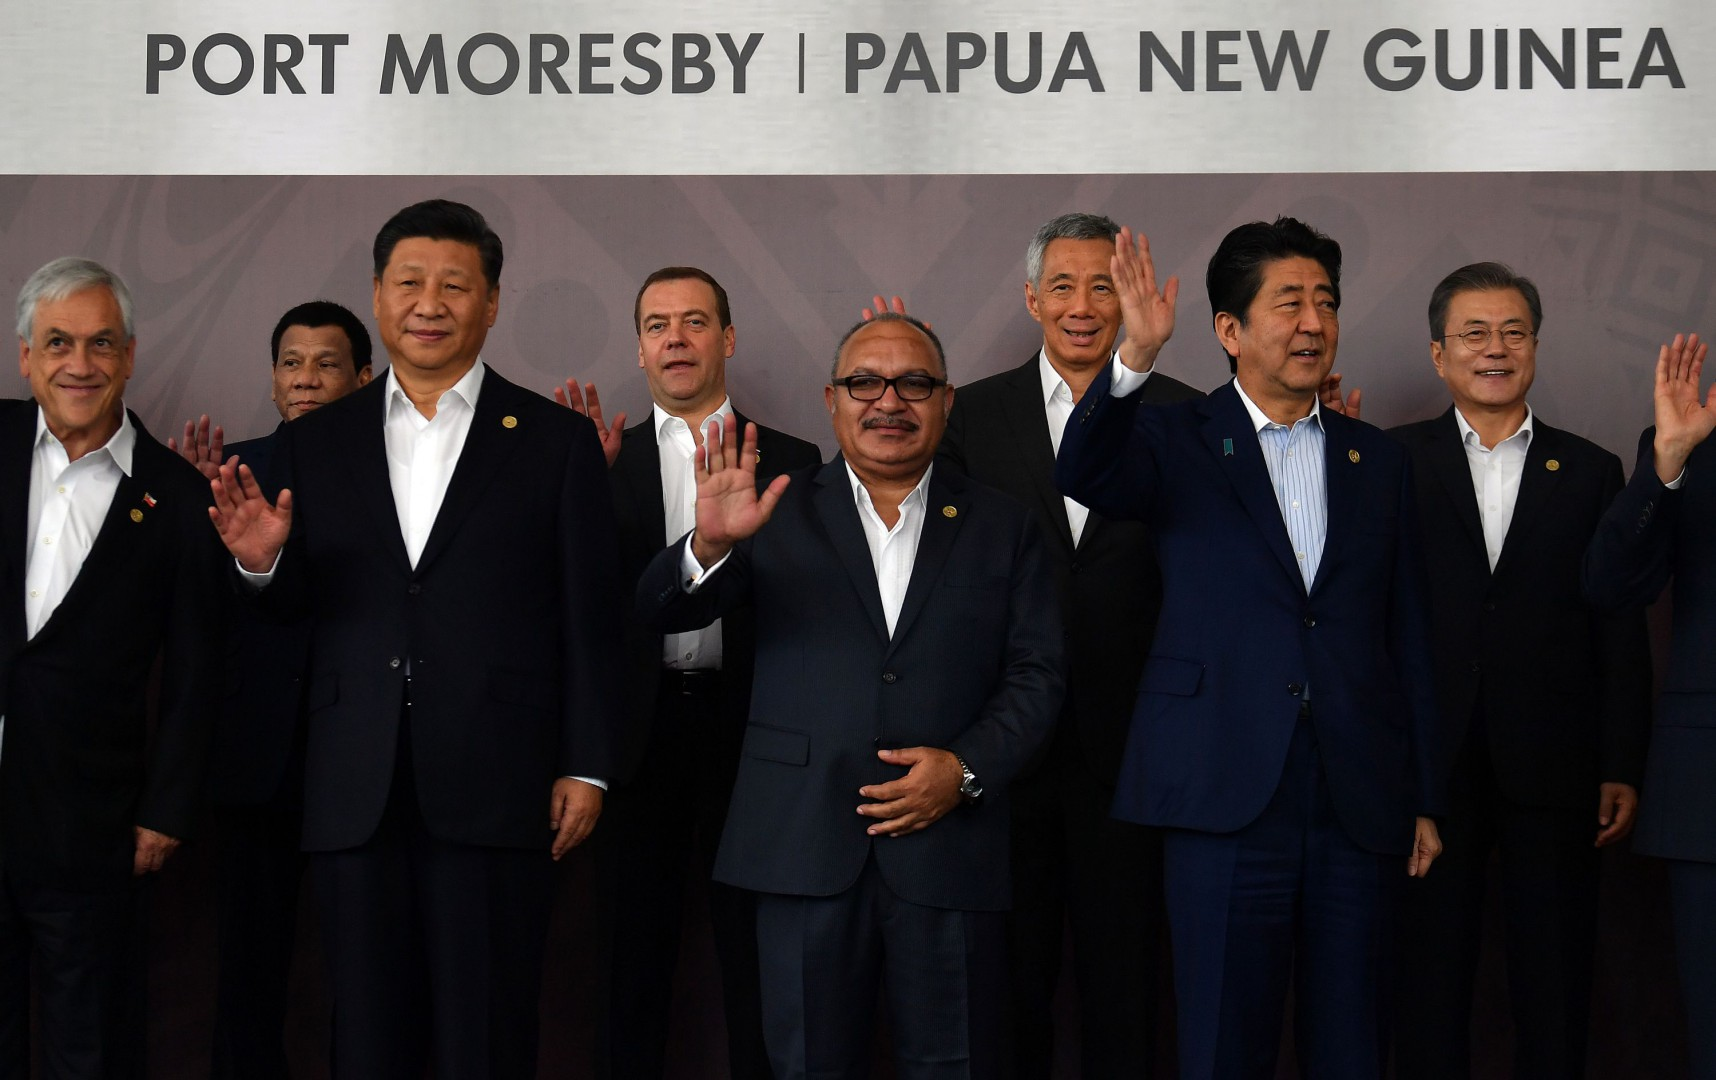 "(L to R-front row) Chile's President Sebastian Pinera, China's President Xi Jinping, Papua New Guinea's Prime Minister Peter O'Neill and Japan's Prime Minister Shinzo Abe wave with (back row L to R) Philippine President Rodrigo Duterte, Russia's Prime Minister Dmitry Medvedev, Singapore's Prime Minister Lee Hsien Loong and South Korea's President Moon Jae-in as they pose for a ""family photo"" during the Asia-Pacific Economic Cooperation (APEC) Summit in Port Moresby on November 18, 2018. (Photo by SAEED KHAN / AFP)"